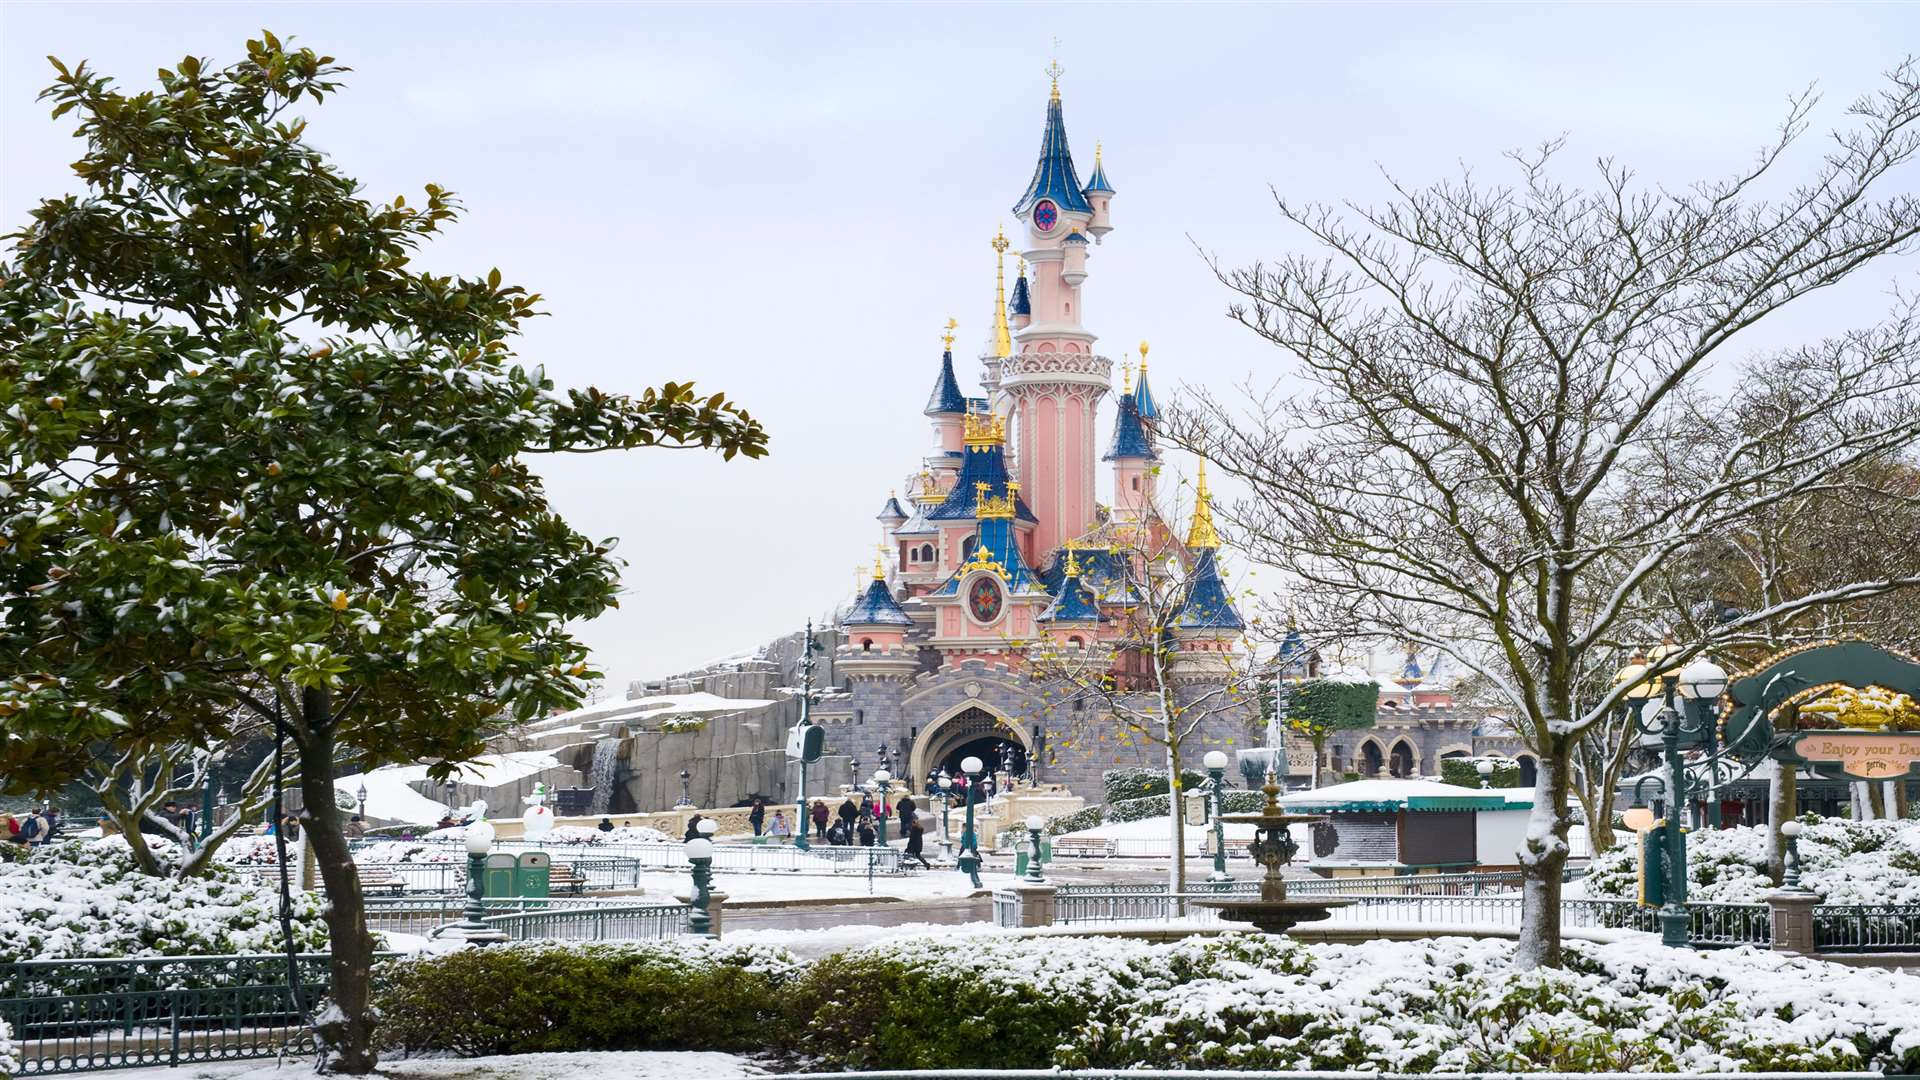 Ashford Paris Visiting Disneyland Paris From Kent